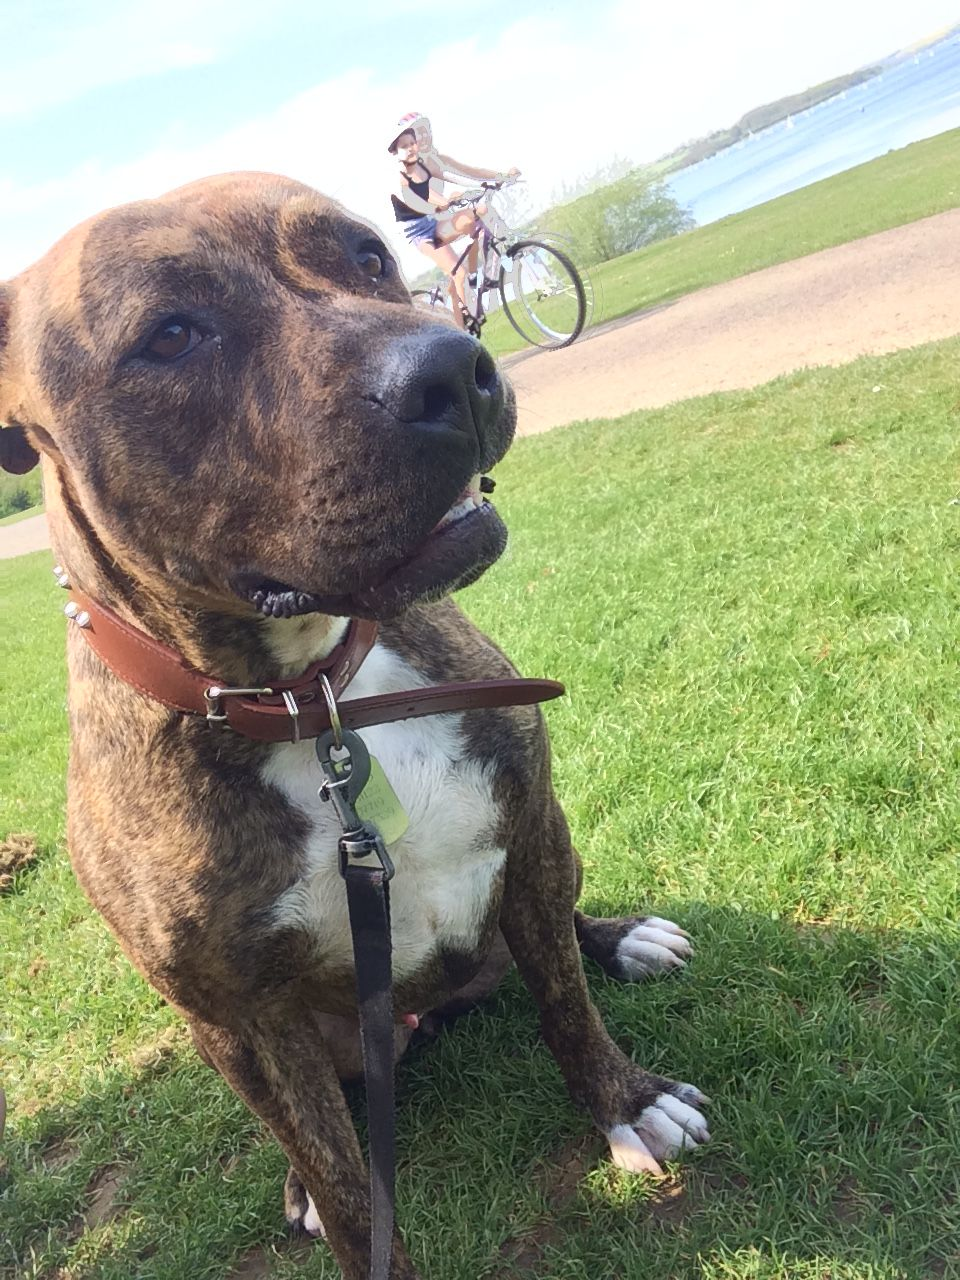 Brindle Staffordshire Bull Terrier Pitbull Puppies Fluffy Puppies Puppies